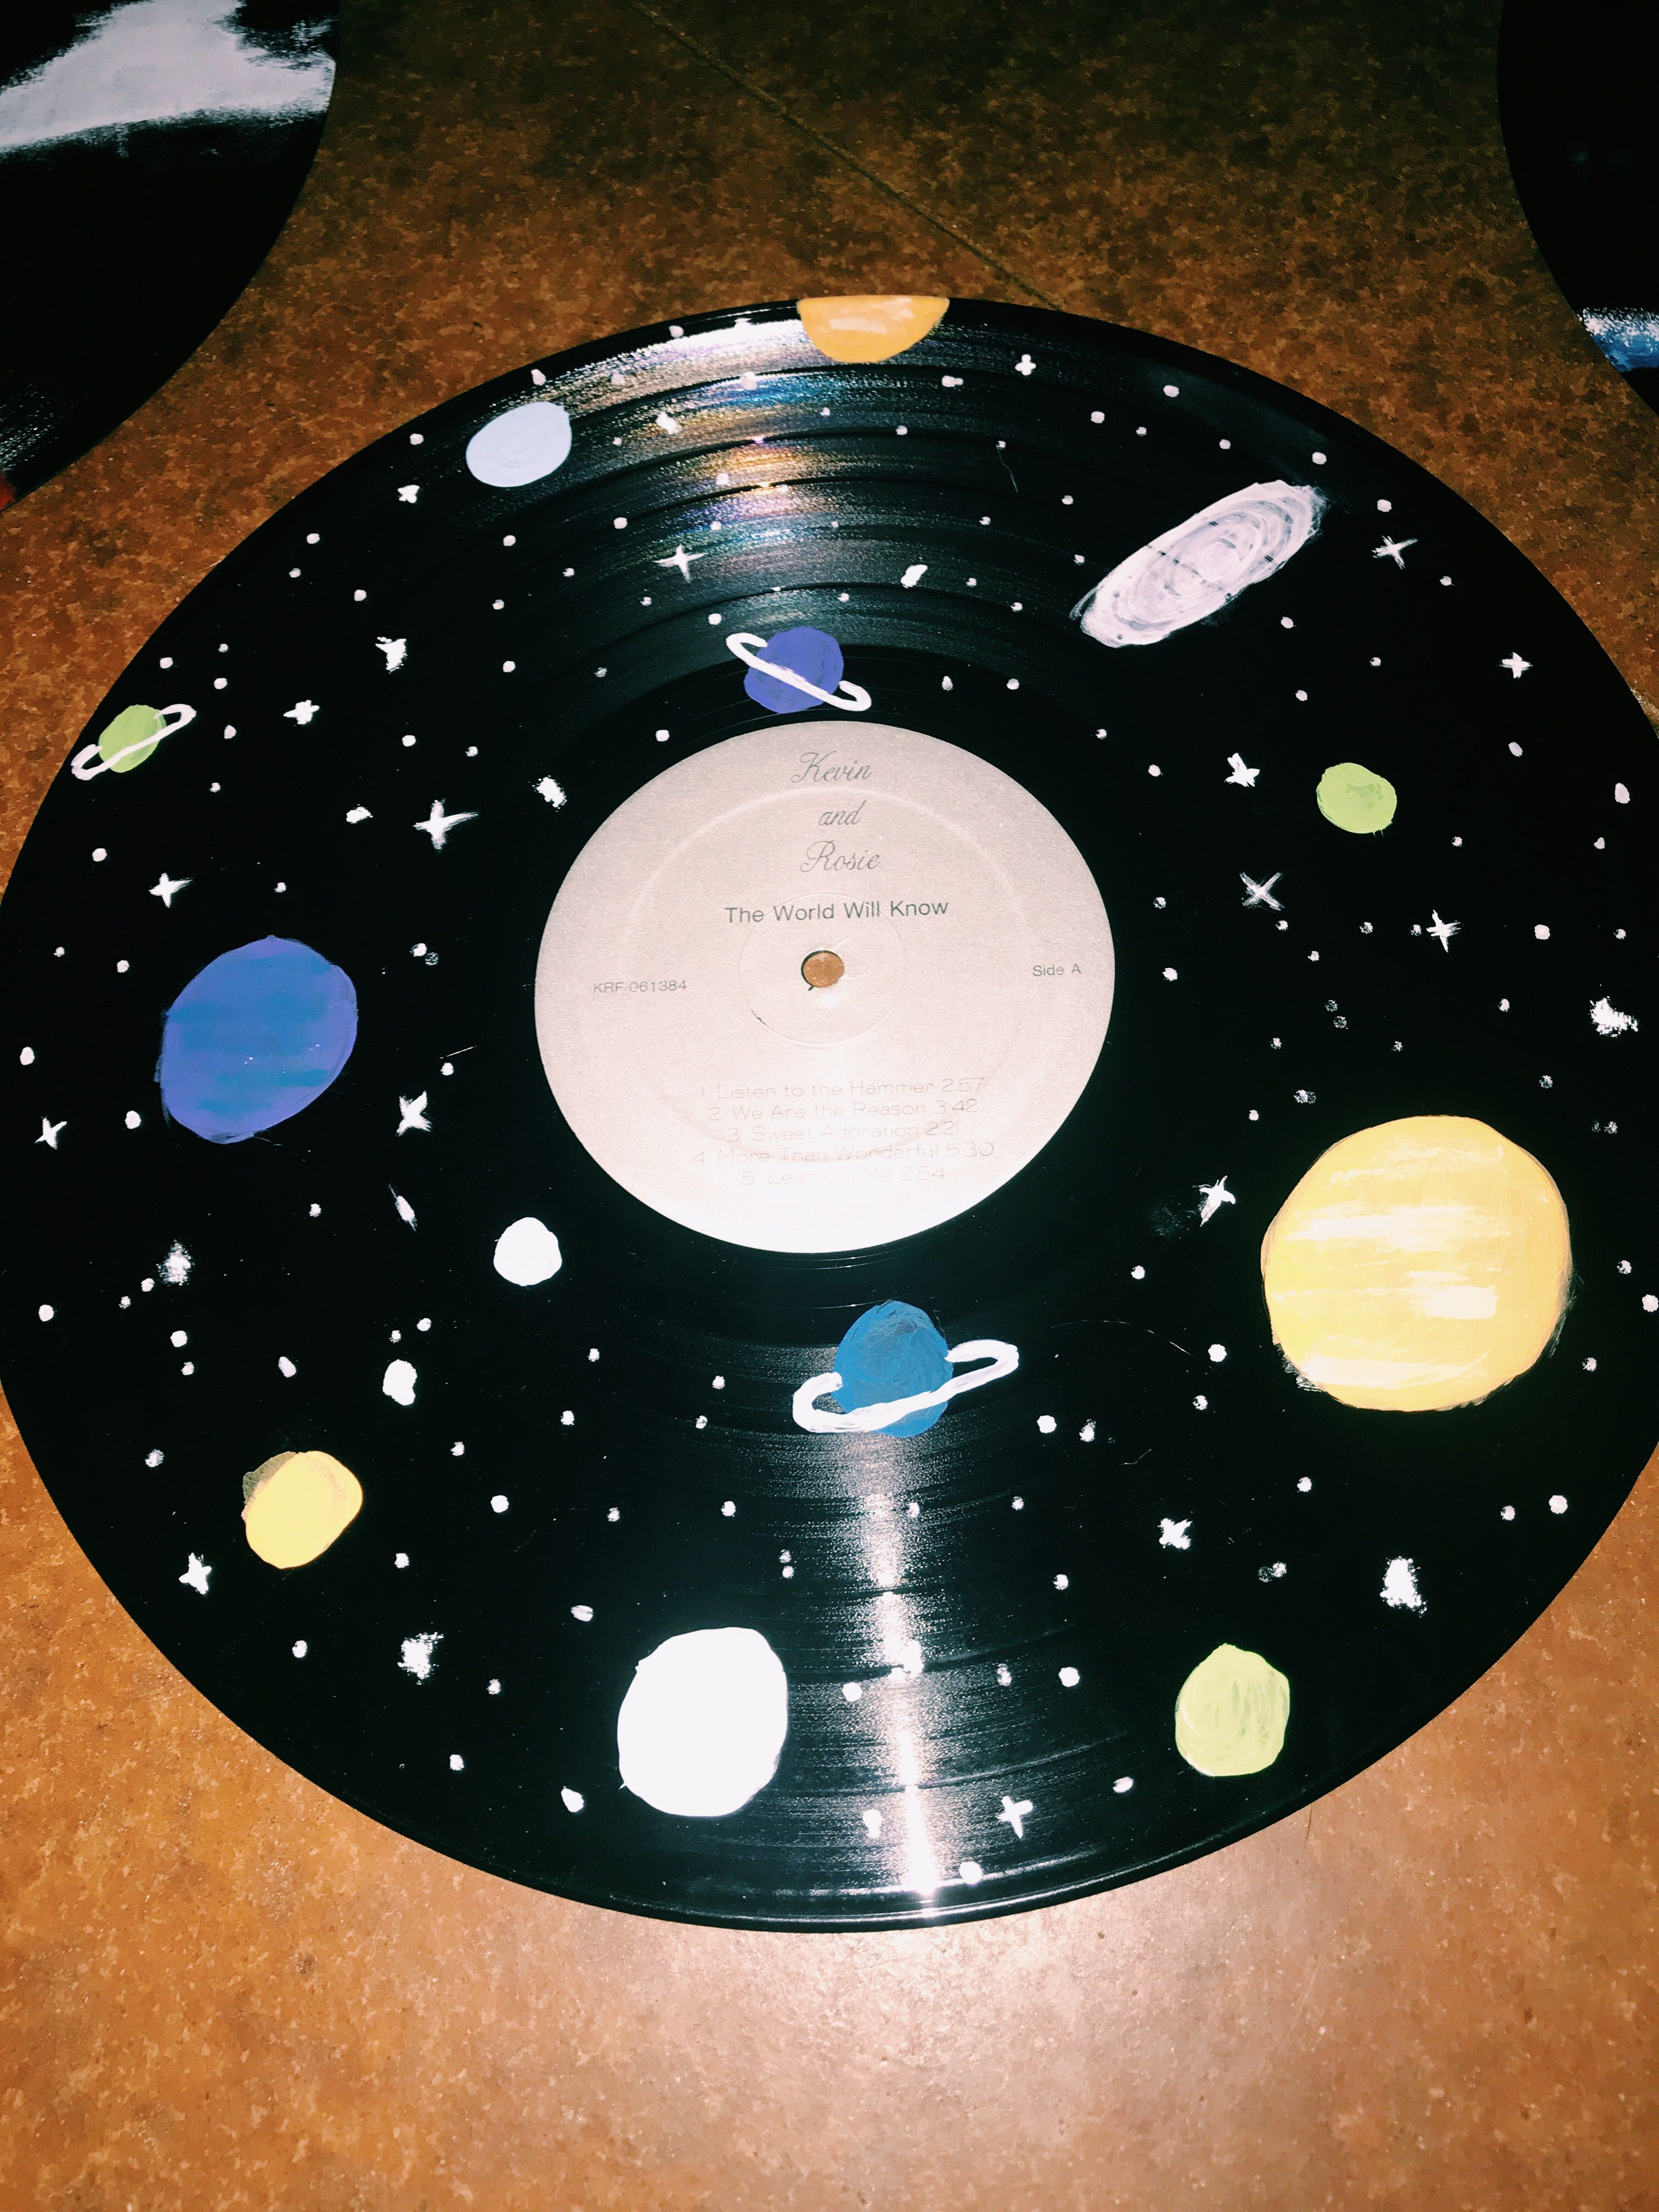 painted galaxy on record | Vinyl record art, Record wall ...